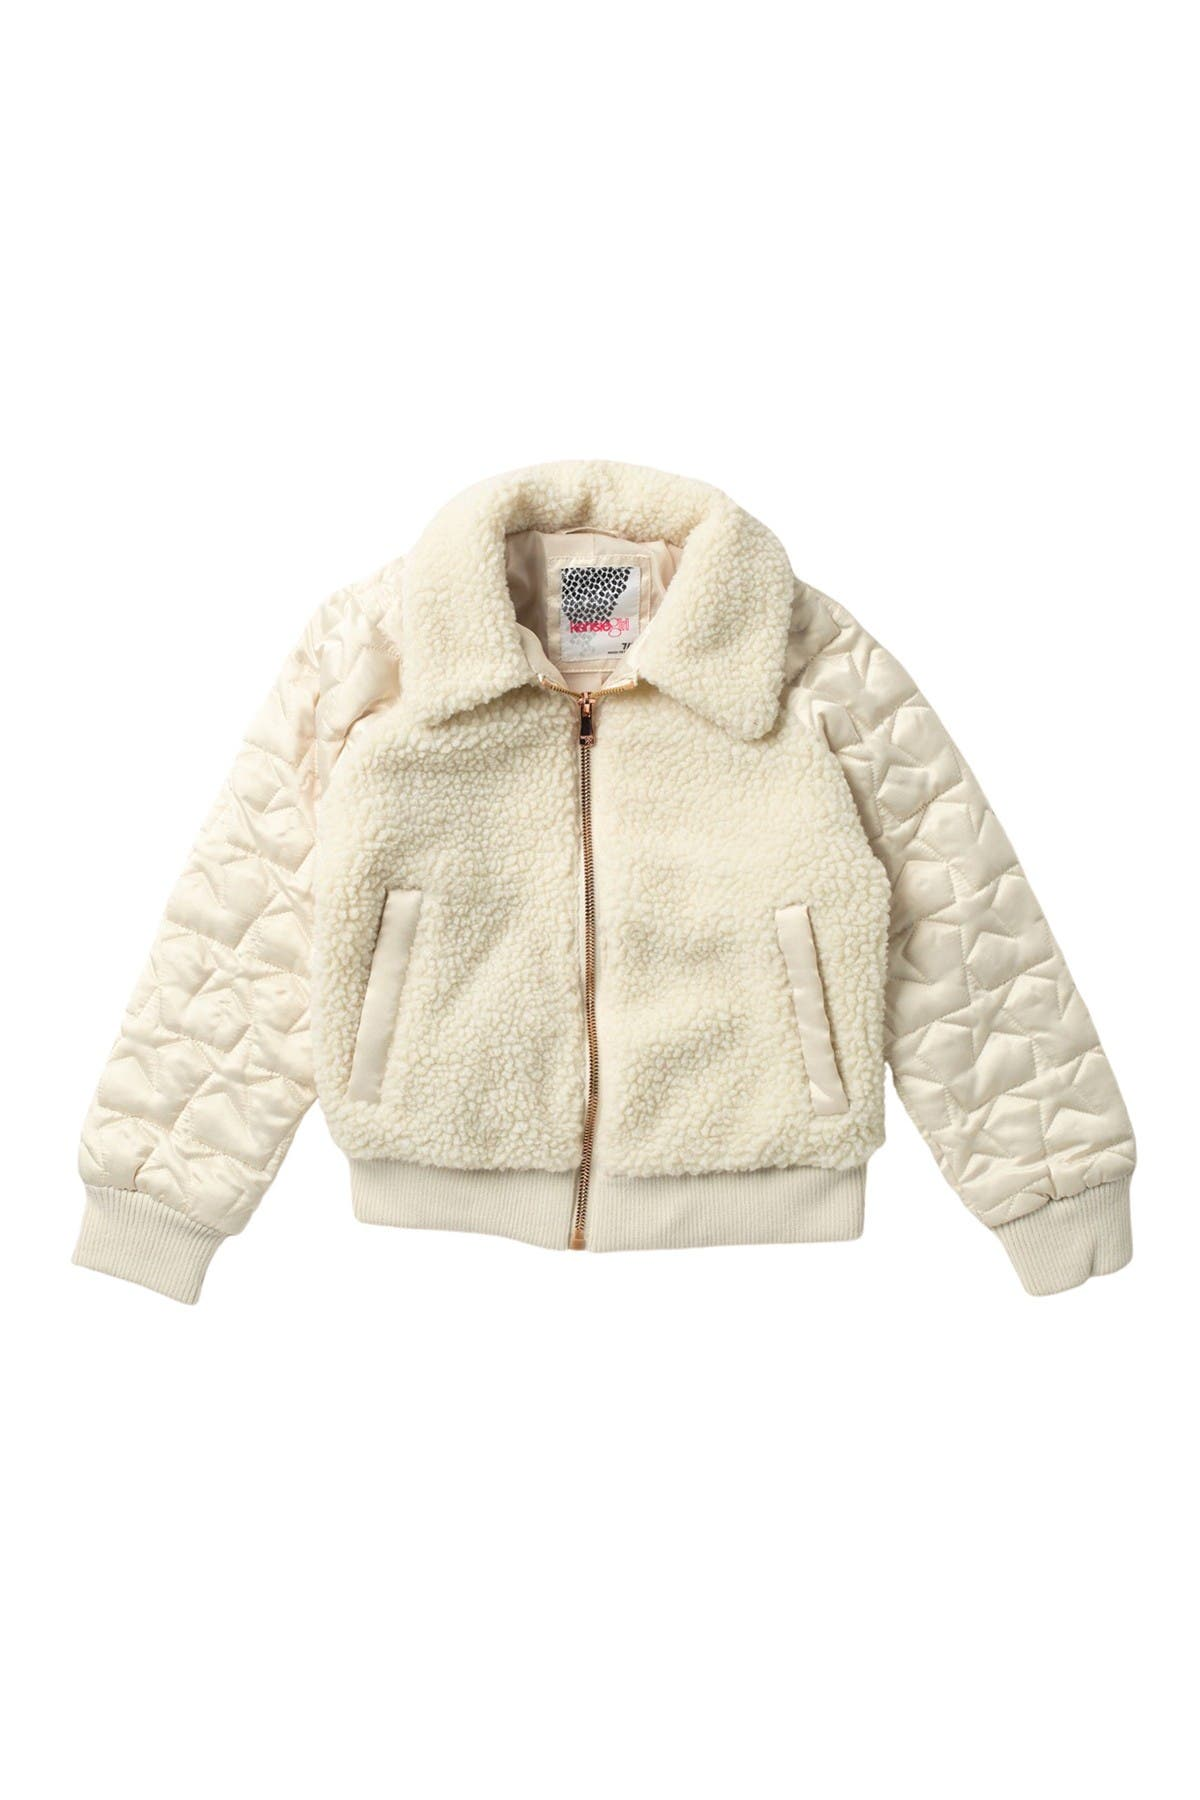 Image of Kensie Teddy Faux Shearling Quilted Bomber Jacket